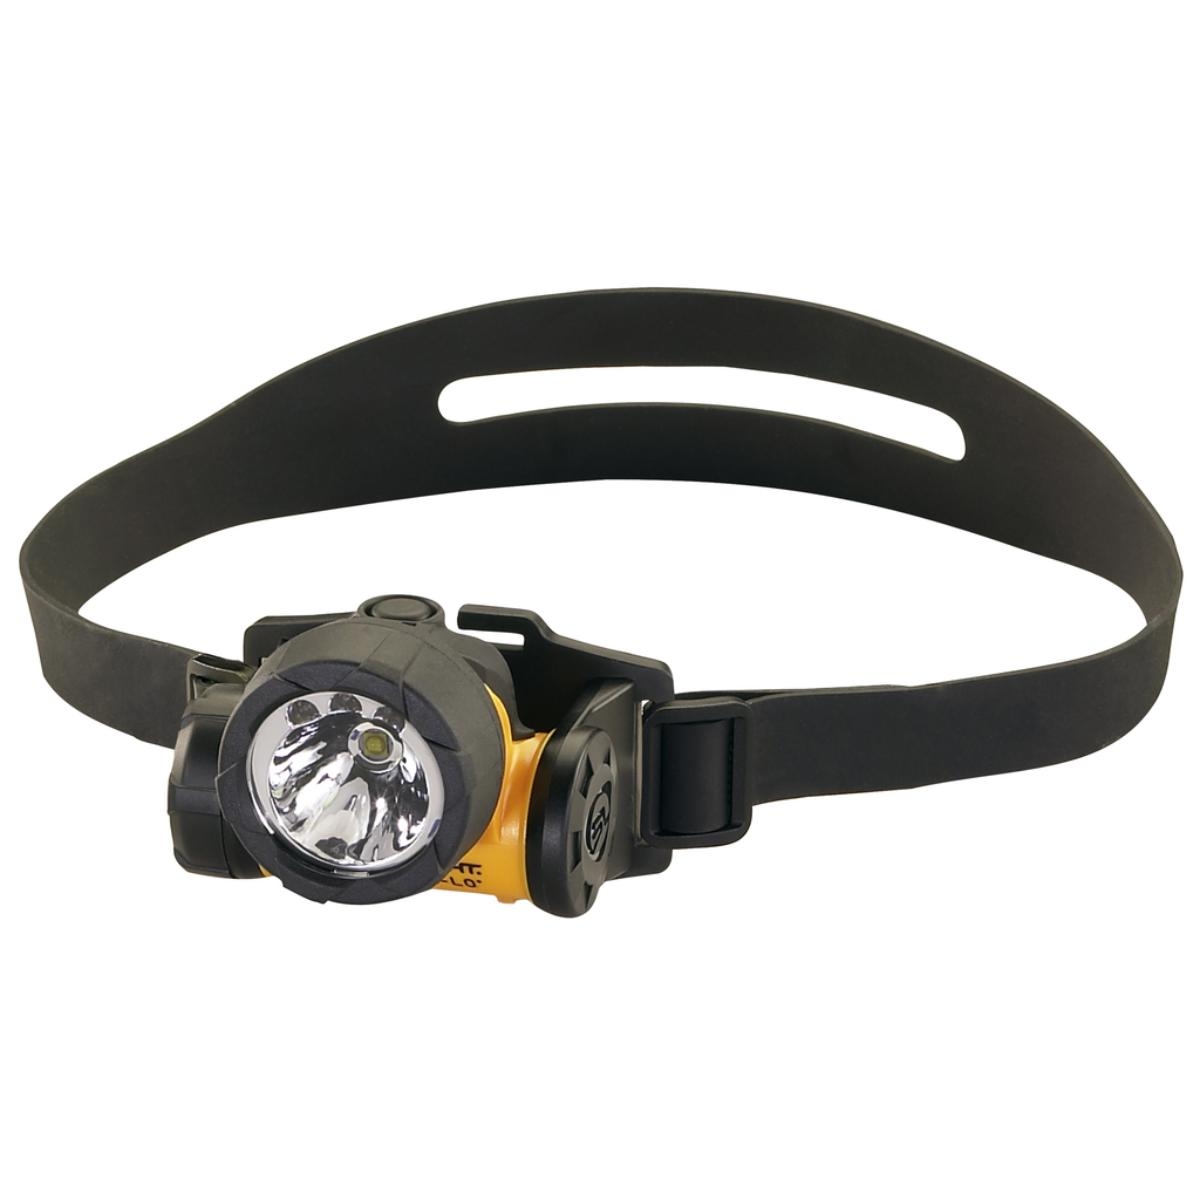 Trident HAZ-LO Div. 1 with White LEDs, alkaline batteries. Rubber & Elastic straps. Yellow